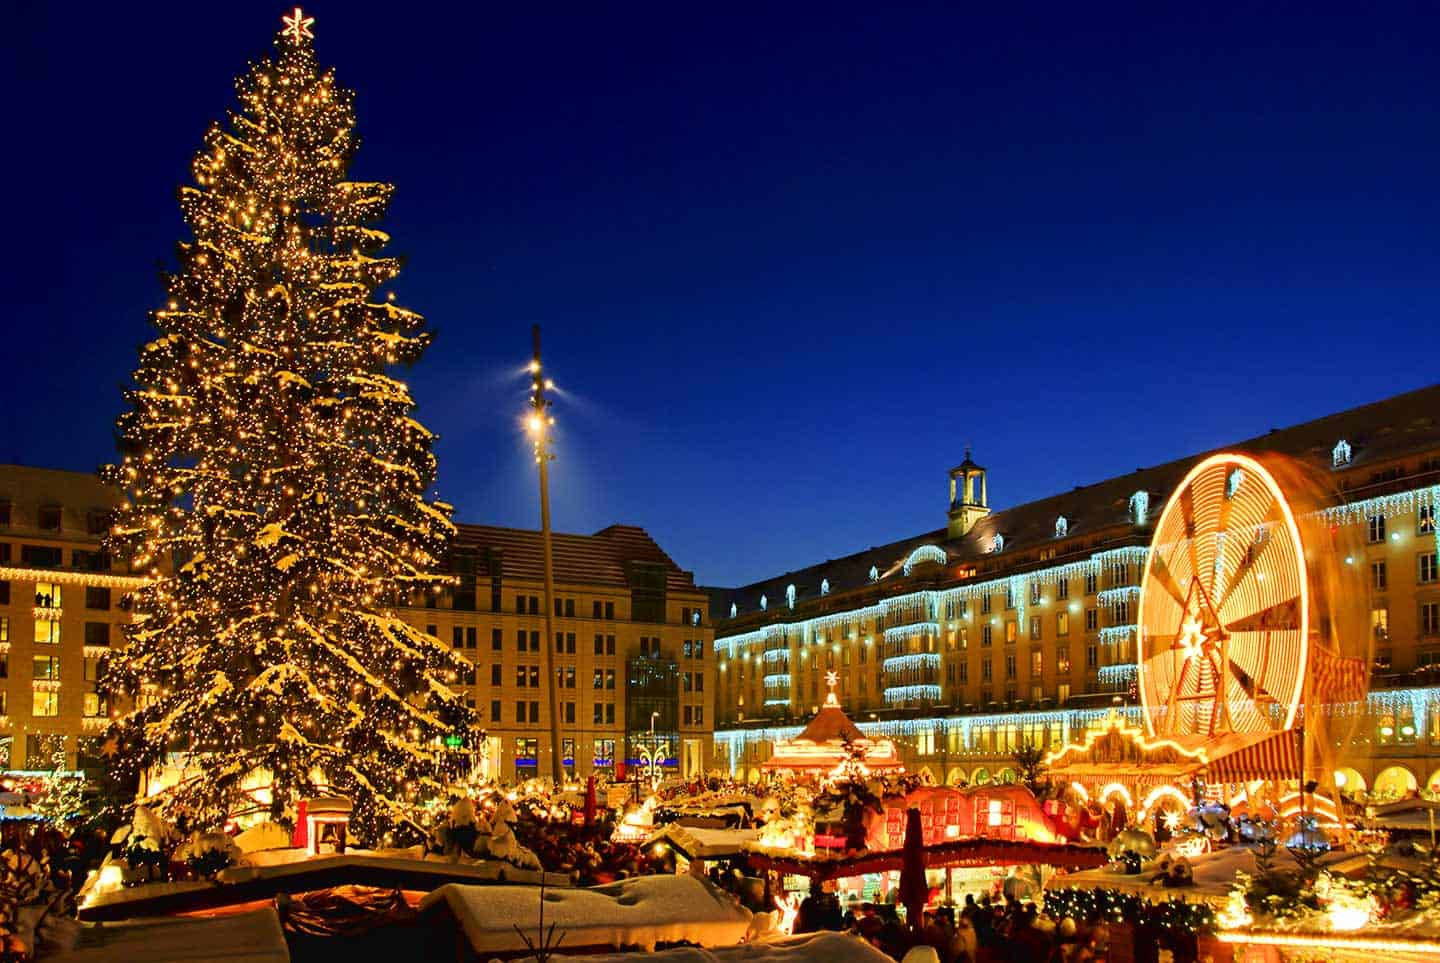 Image of the Striezelmarkt Christmas Market in Dresden, Germany